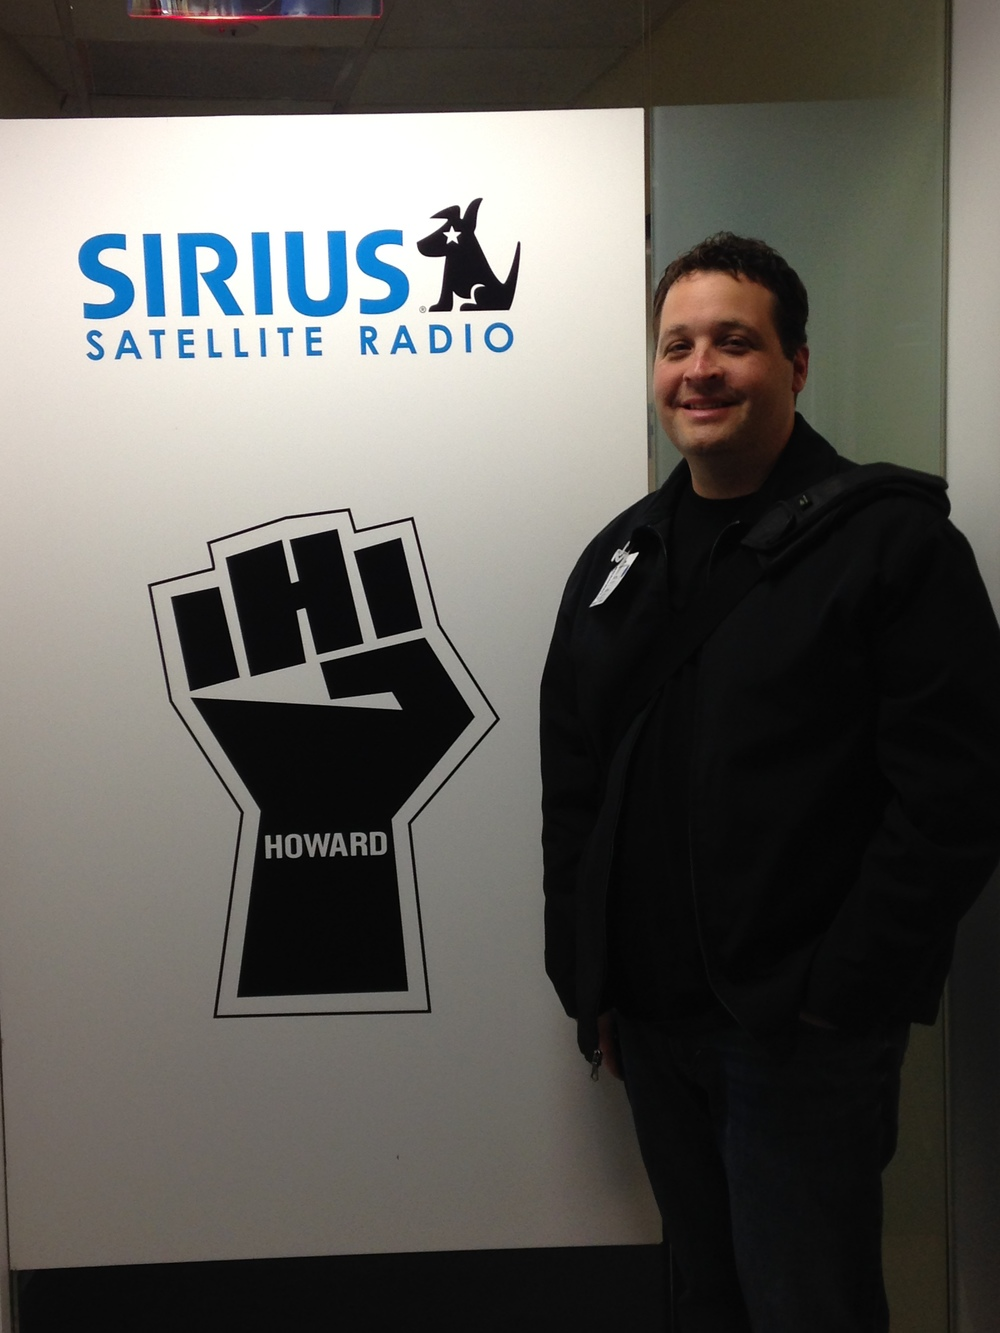 The door to Howard's compound, I wasn't allowed in but if the rest of the Sirius studio is any indication... it must be amazing!